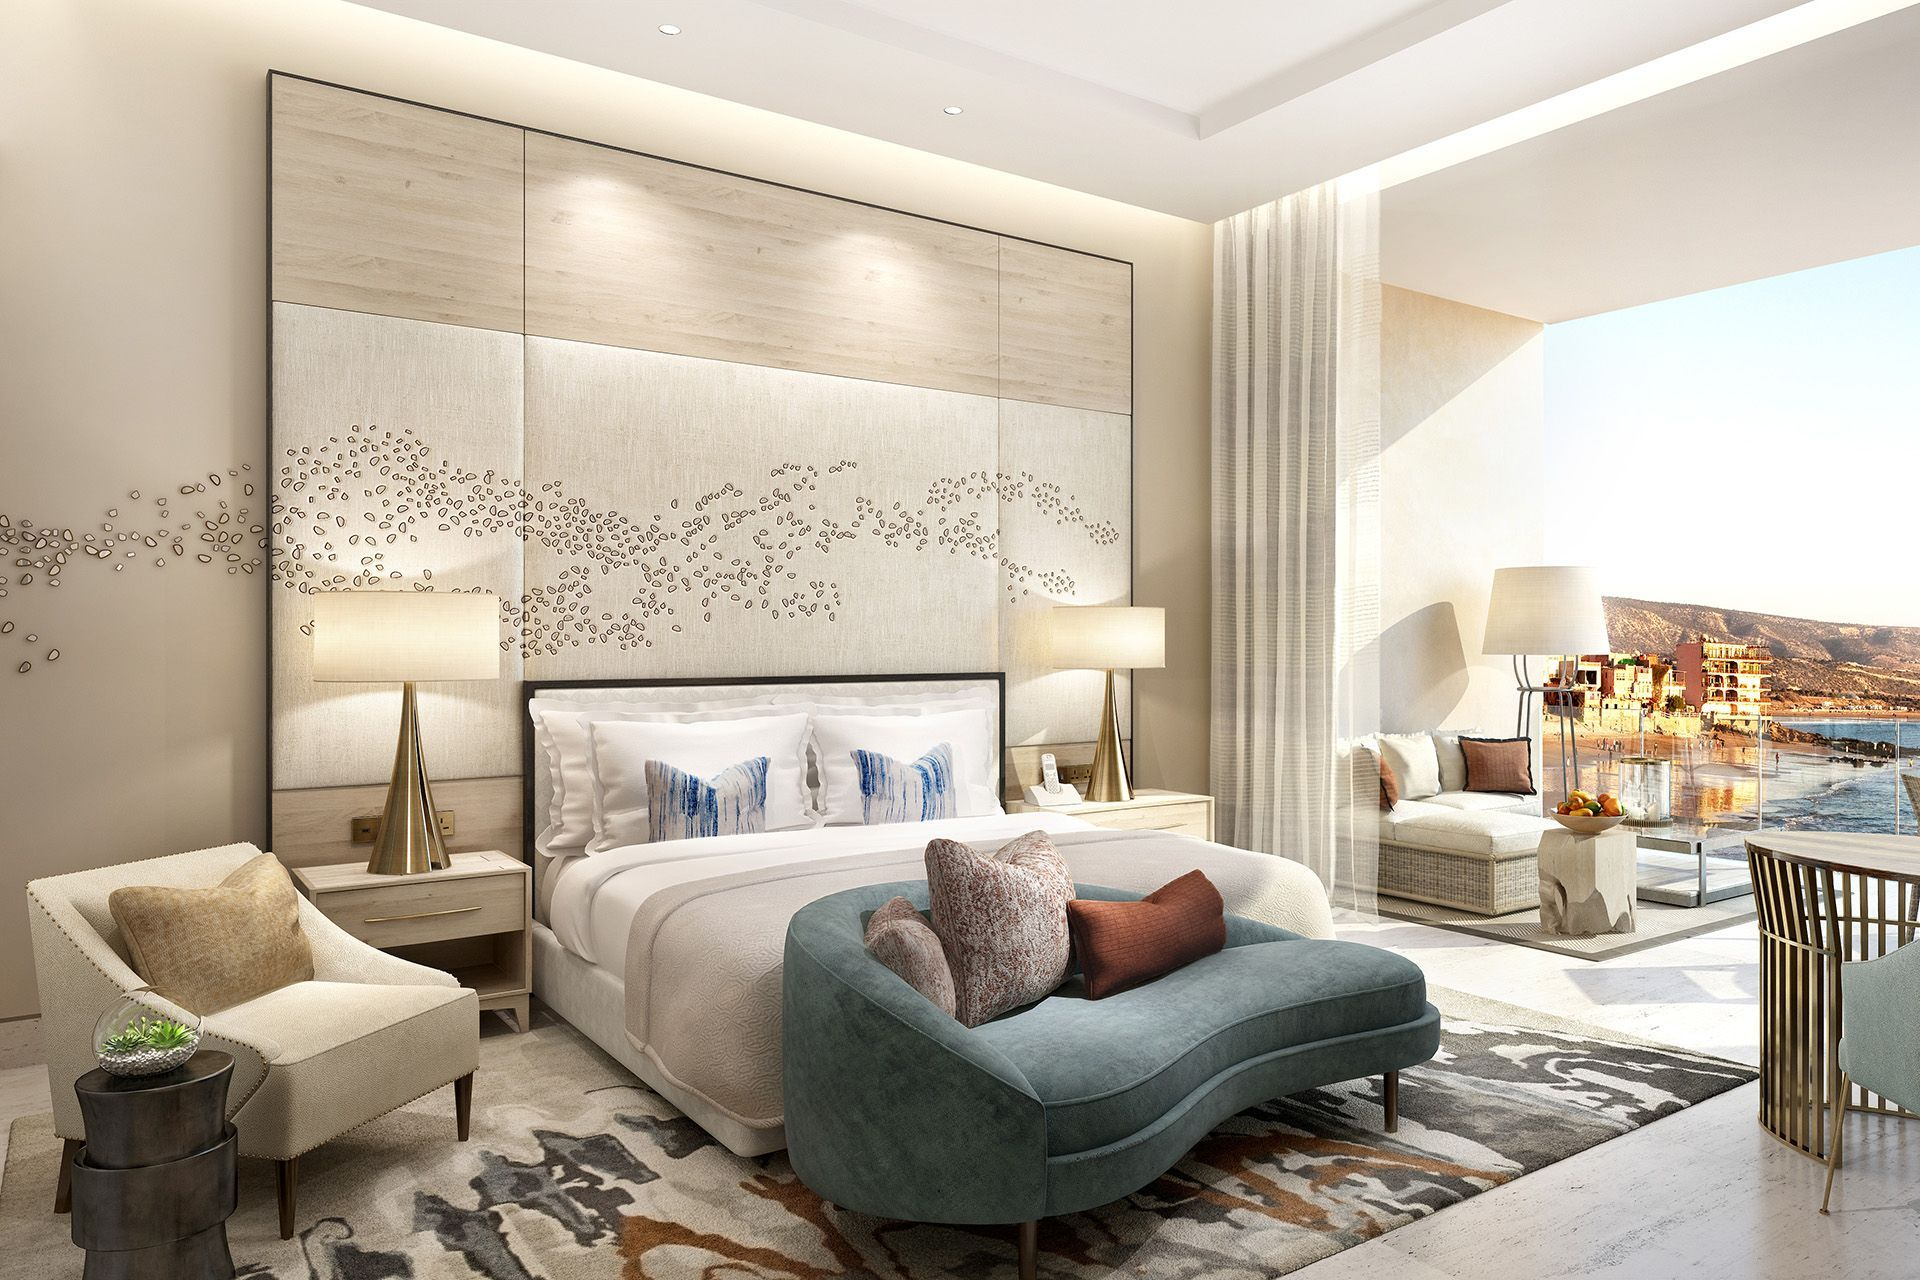 Four seasons taghazout interior designers wimberly for Bedroom bed design